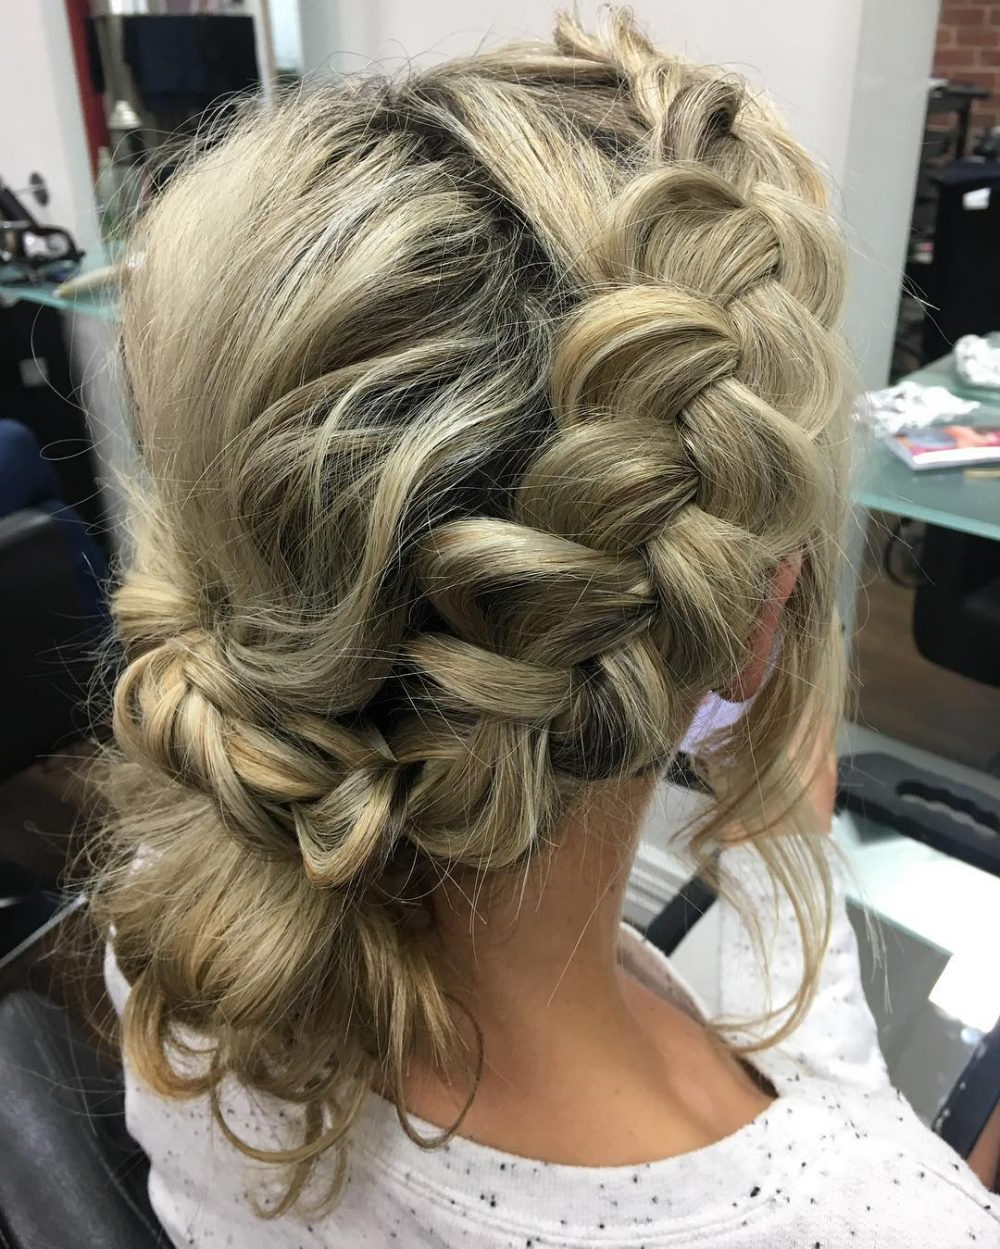 Top 19 Bohemian Hairstyles Trending In 2019 Regarding Best And Newest Chic Bohemian Braid Hairstyles (View 8 of 20)